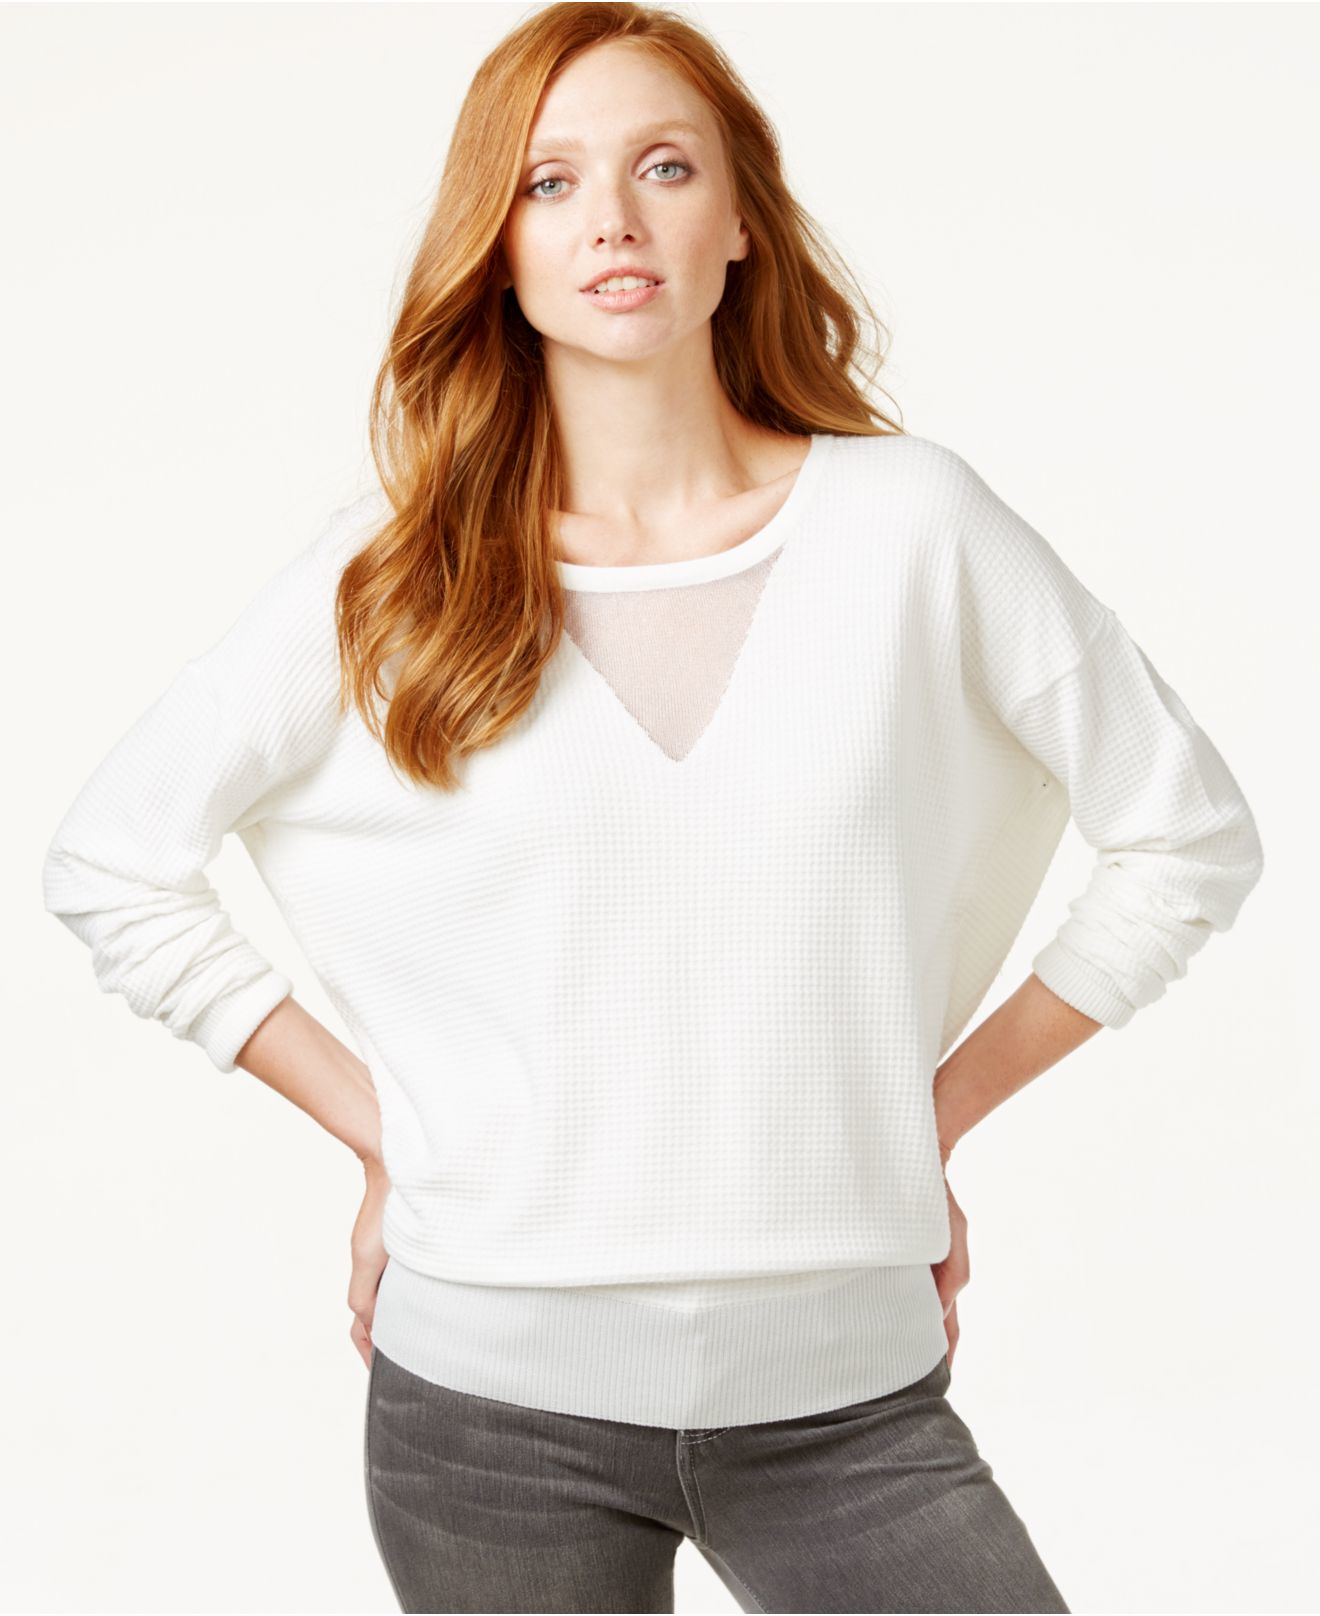 4b8f35fd88b5c Lyst - Calvin Klein Sheer-neck Long-sleeve Top in White